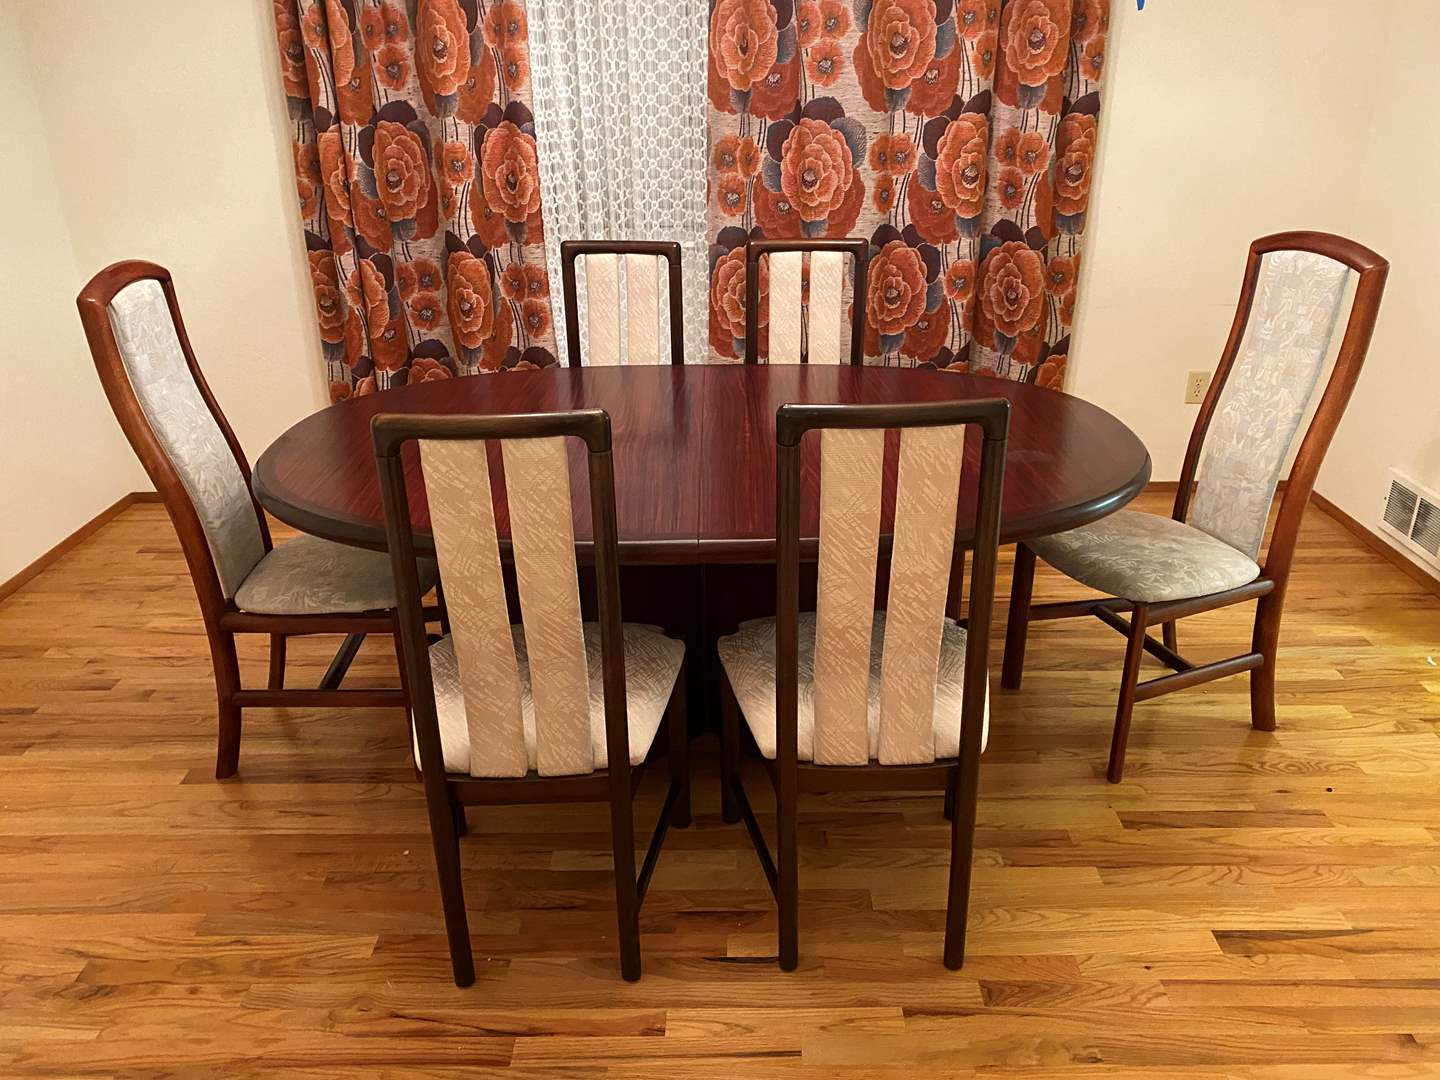 Lot # 274 - Nice Skovby Cherrywood Dinning Room Table w/6 Chairs & 2 Leaves - Made in Denmark (main image)